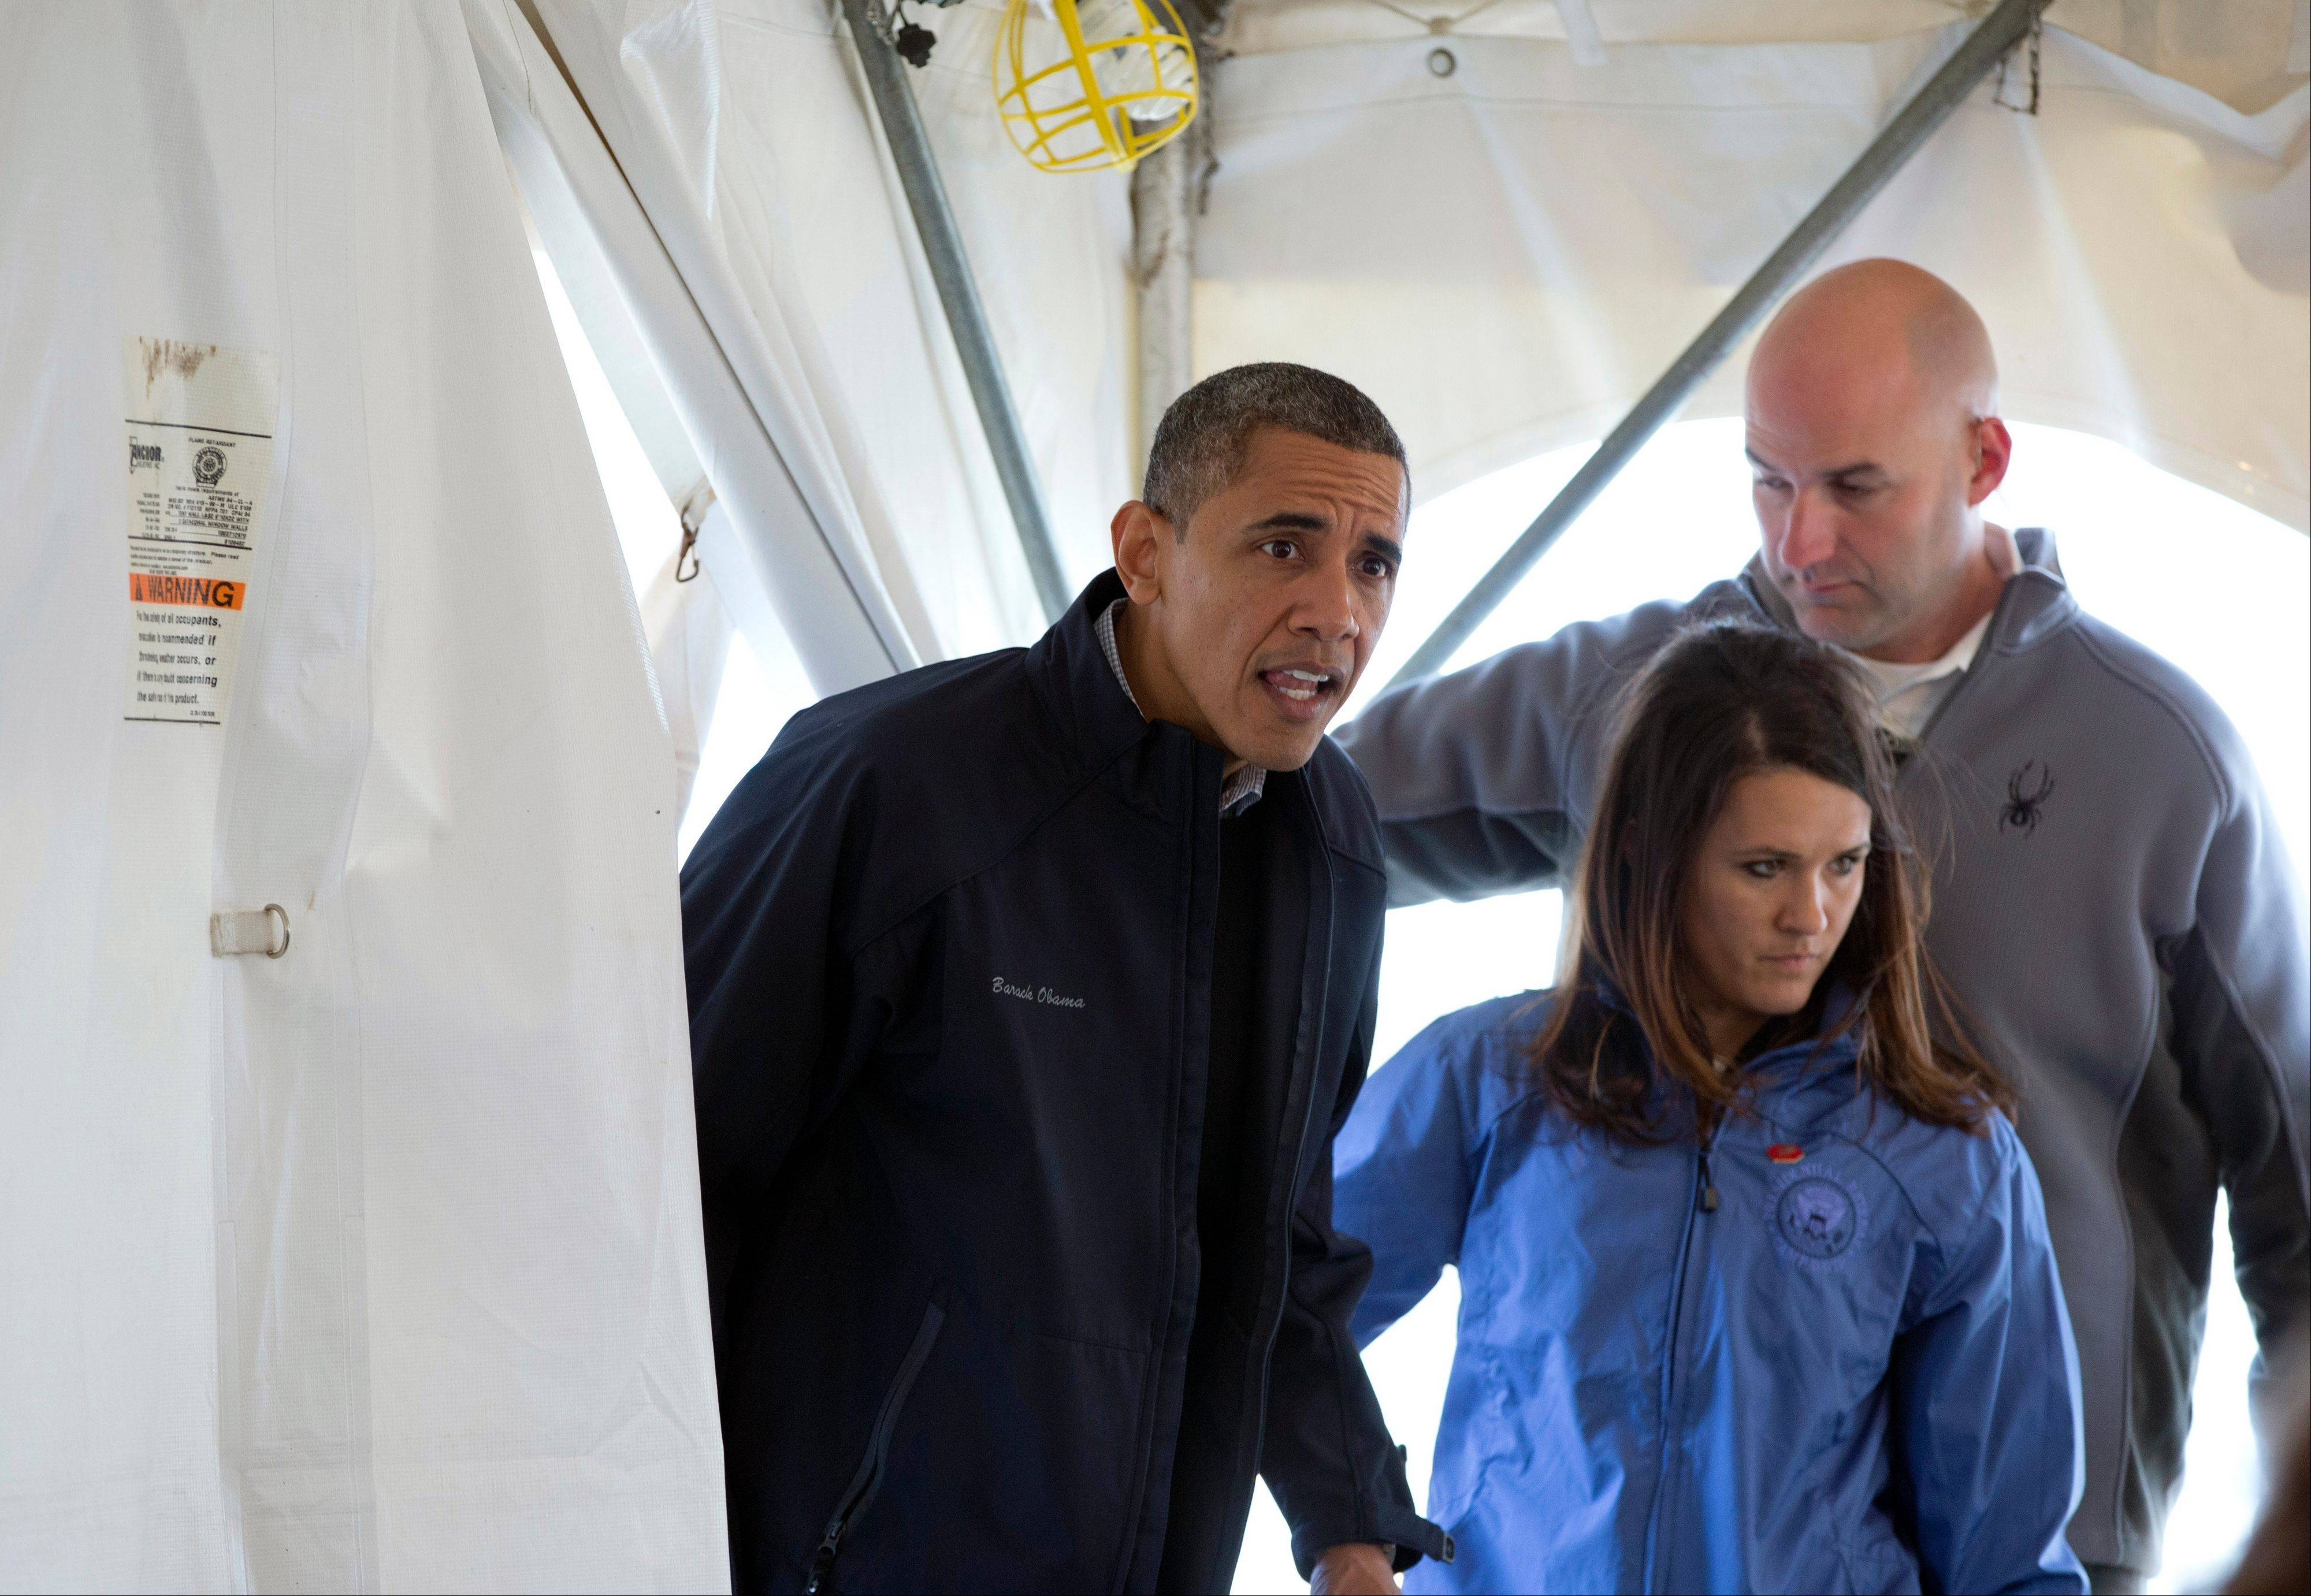 President Barack Obama ducks into a tent to greet people at a FEMA recovery center on the grounds of New Dorp High School on the Staten Island borough of New York, Thursday. Obama vowed Thursday to stick with New Yorkers still struggling 17 days after Superstorm Sandy �until the rebuilding is complete� after getting an up-close look at devastated neighborhoods rendered unlivable.